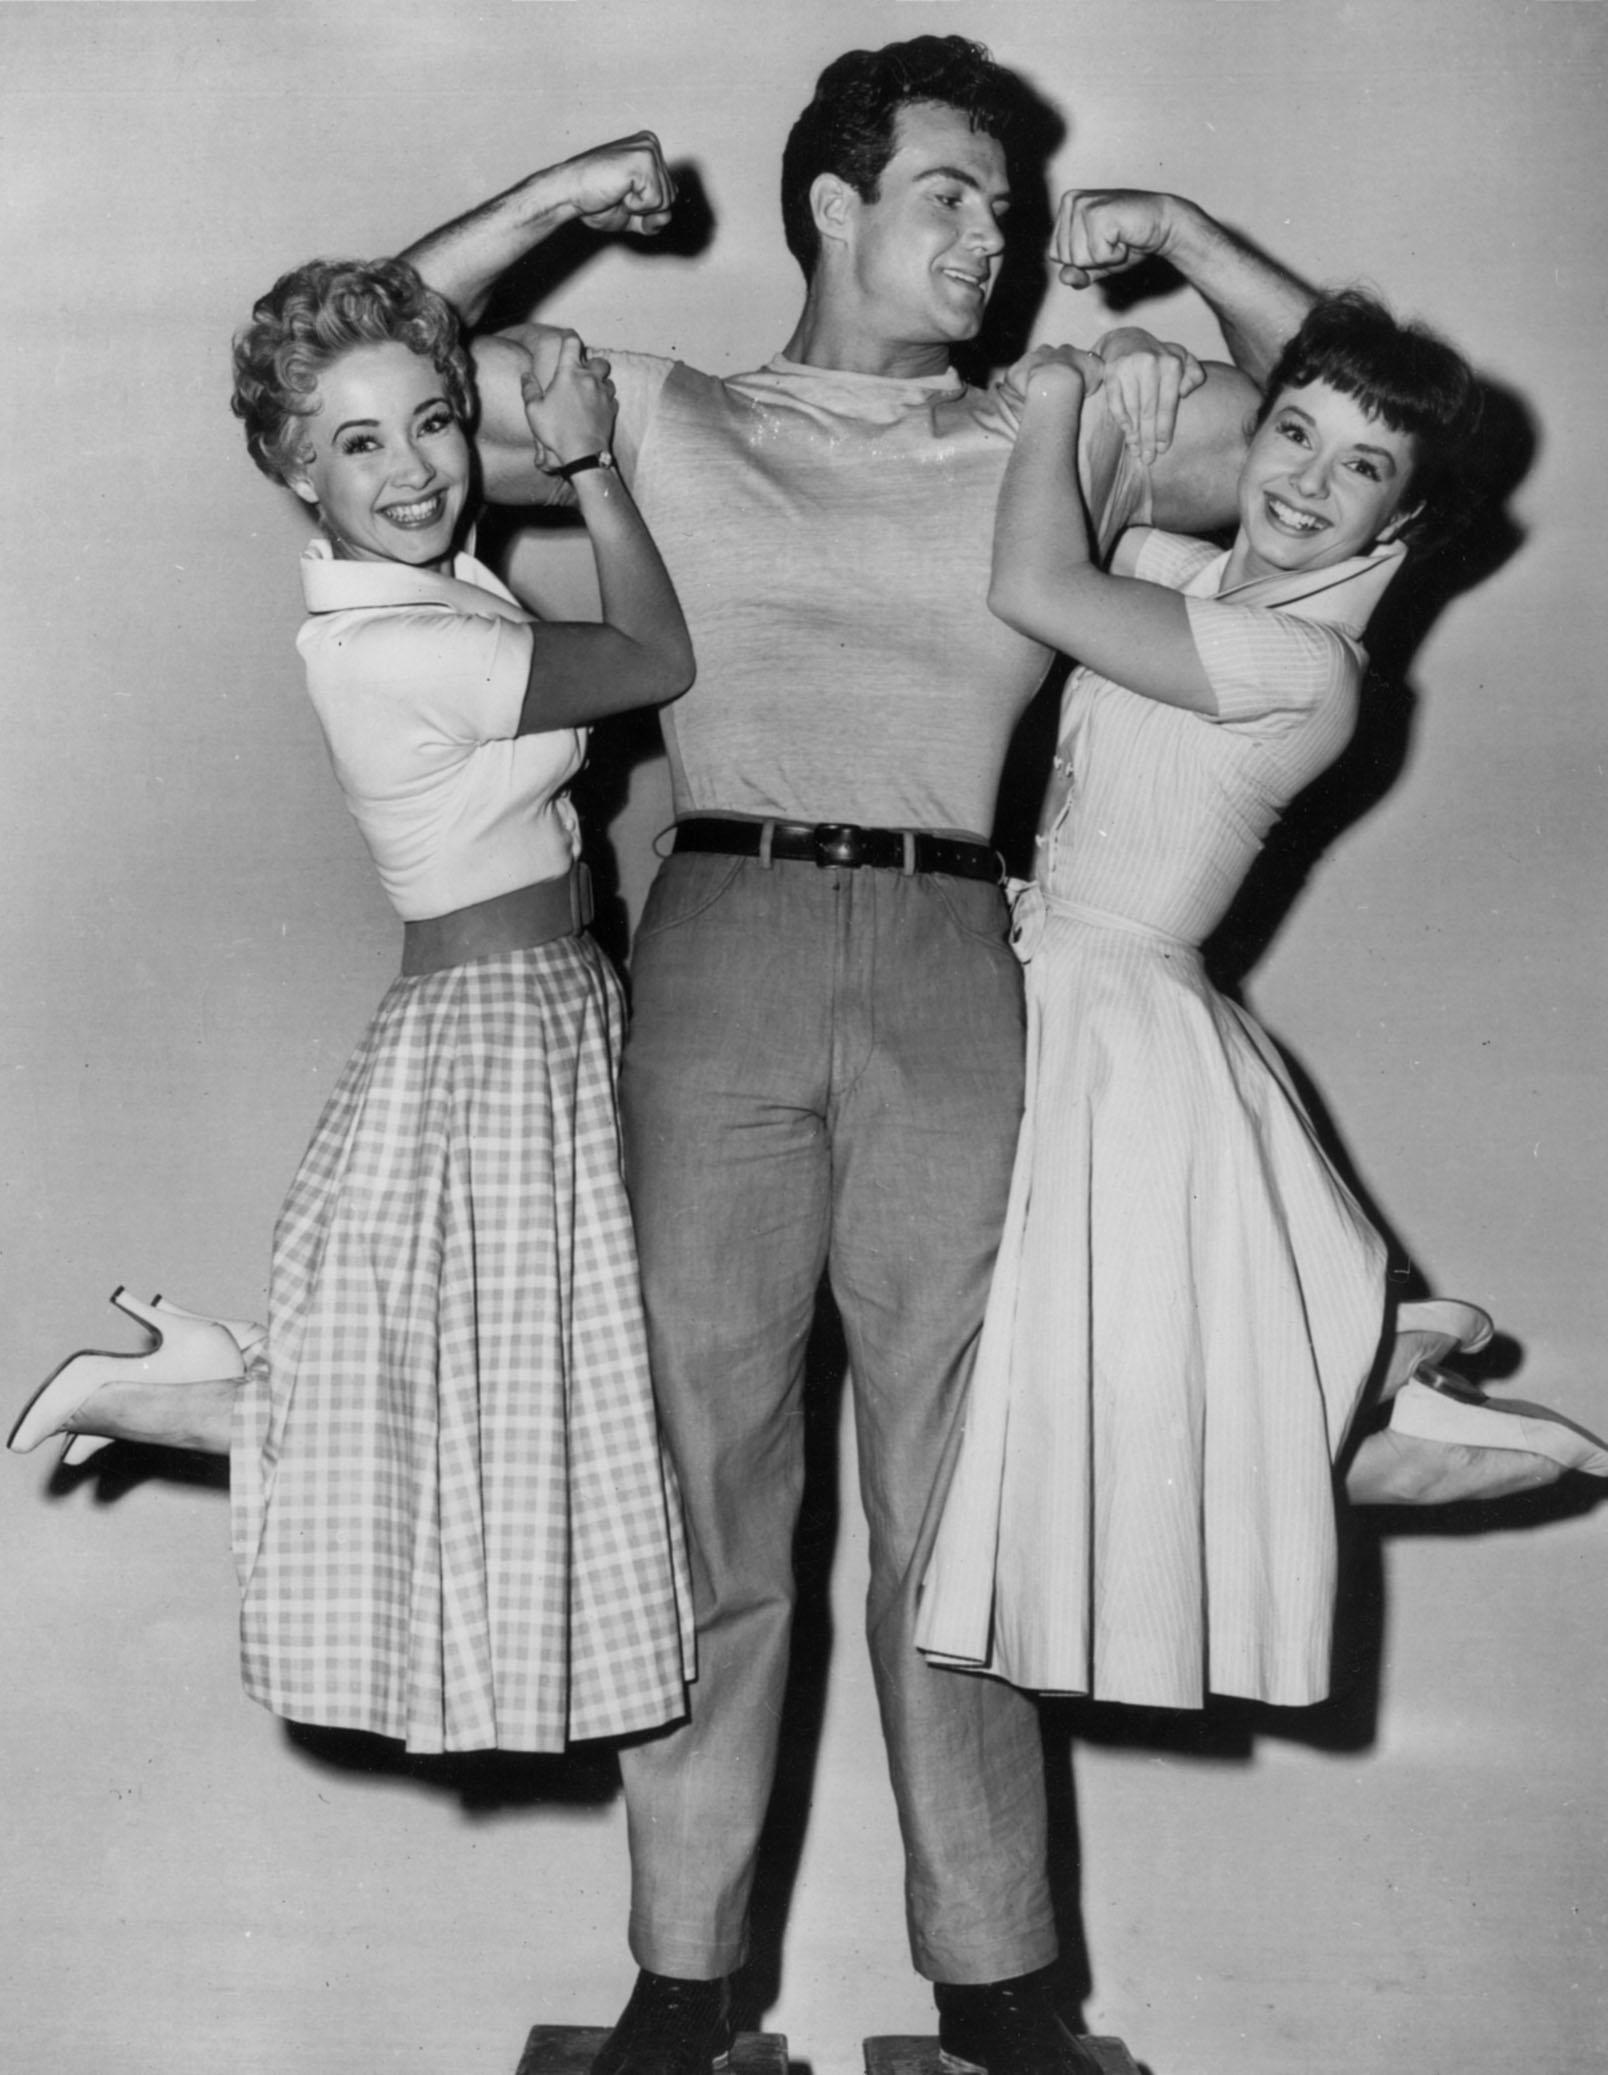 Debbie Reynolds photo 37 of 46 pics, wallpaper - photo #423474 ...